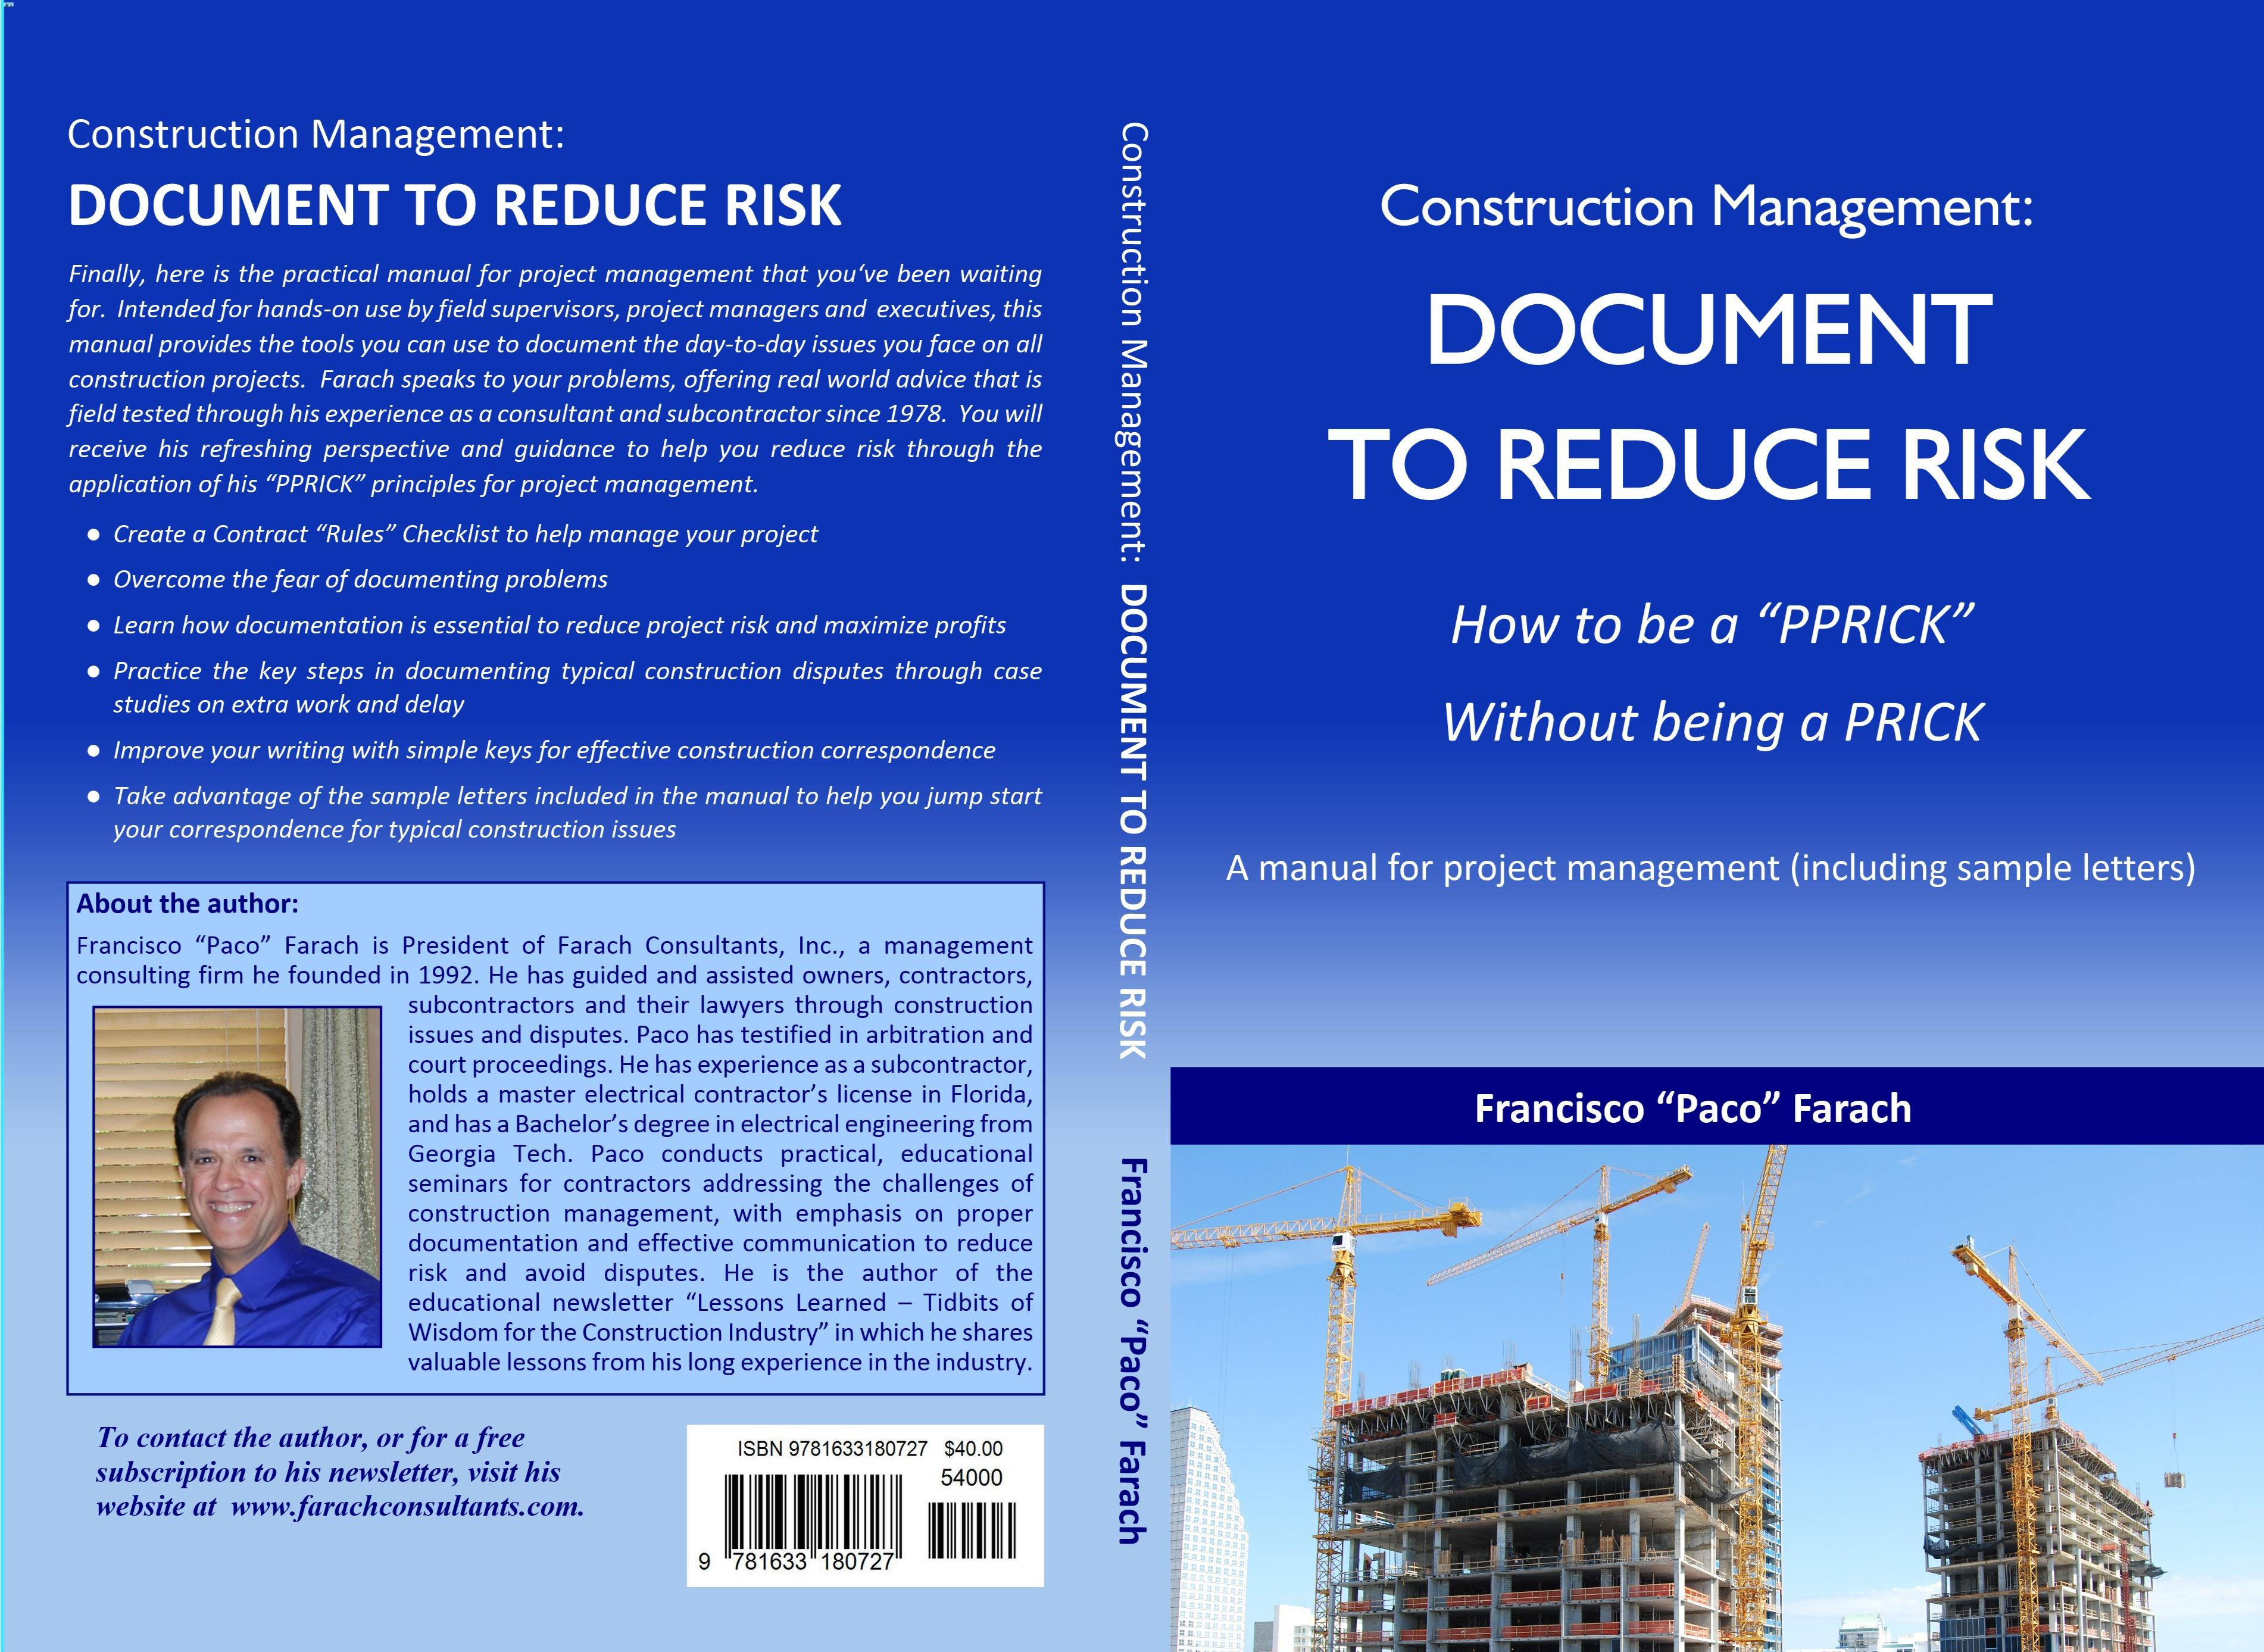 Construction Management: Document to Reduce Risk cover image